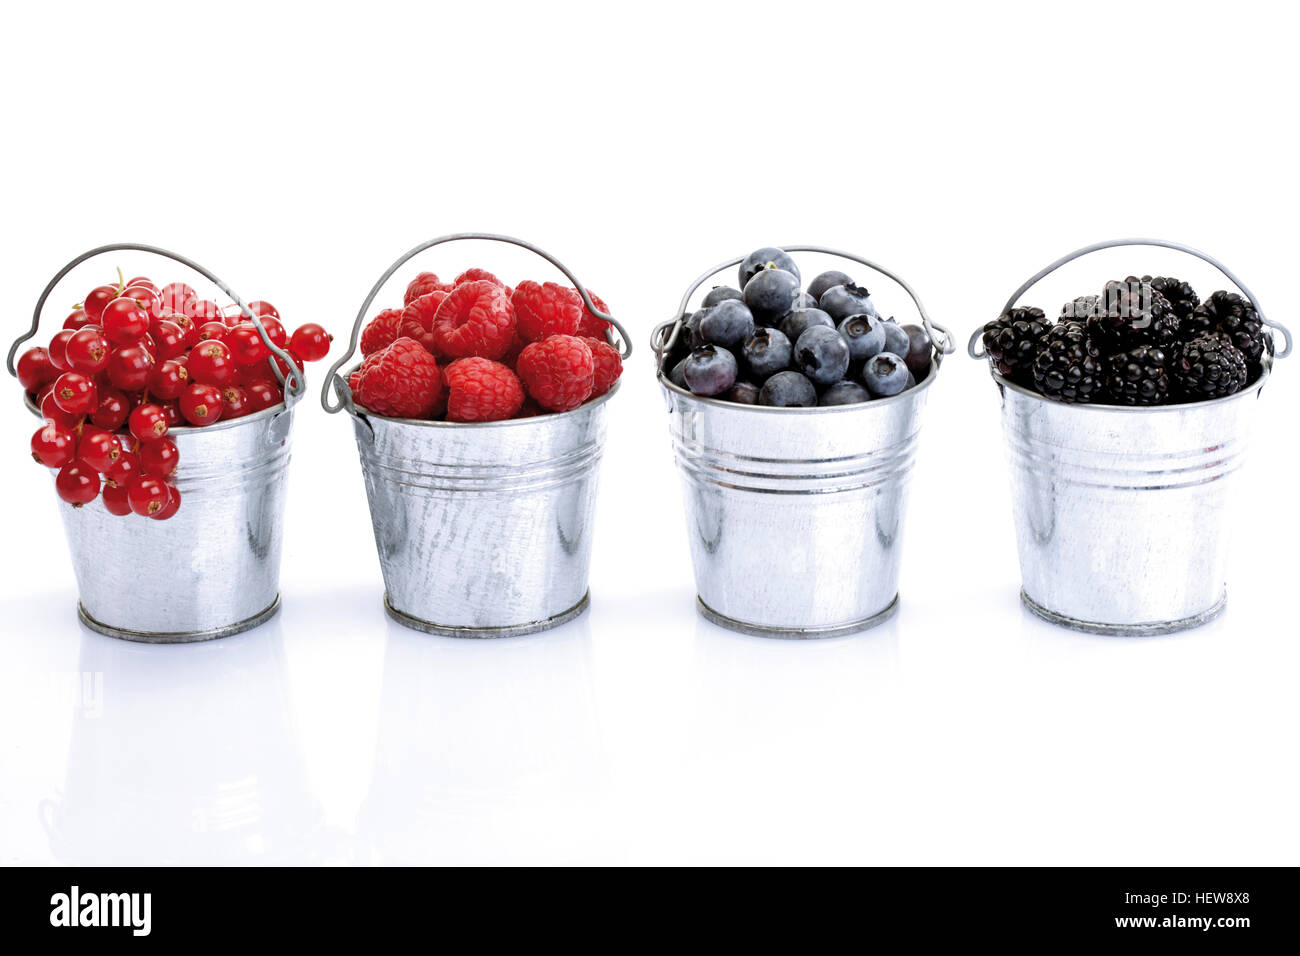 Four small galvanized buckets containing (left to right) red currants, raspberries, blueberries and blackberries - Stock Image